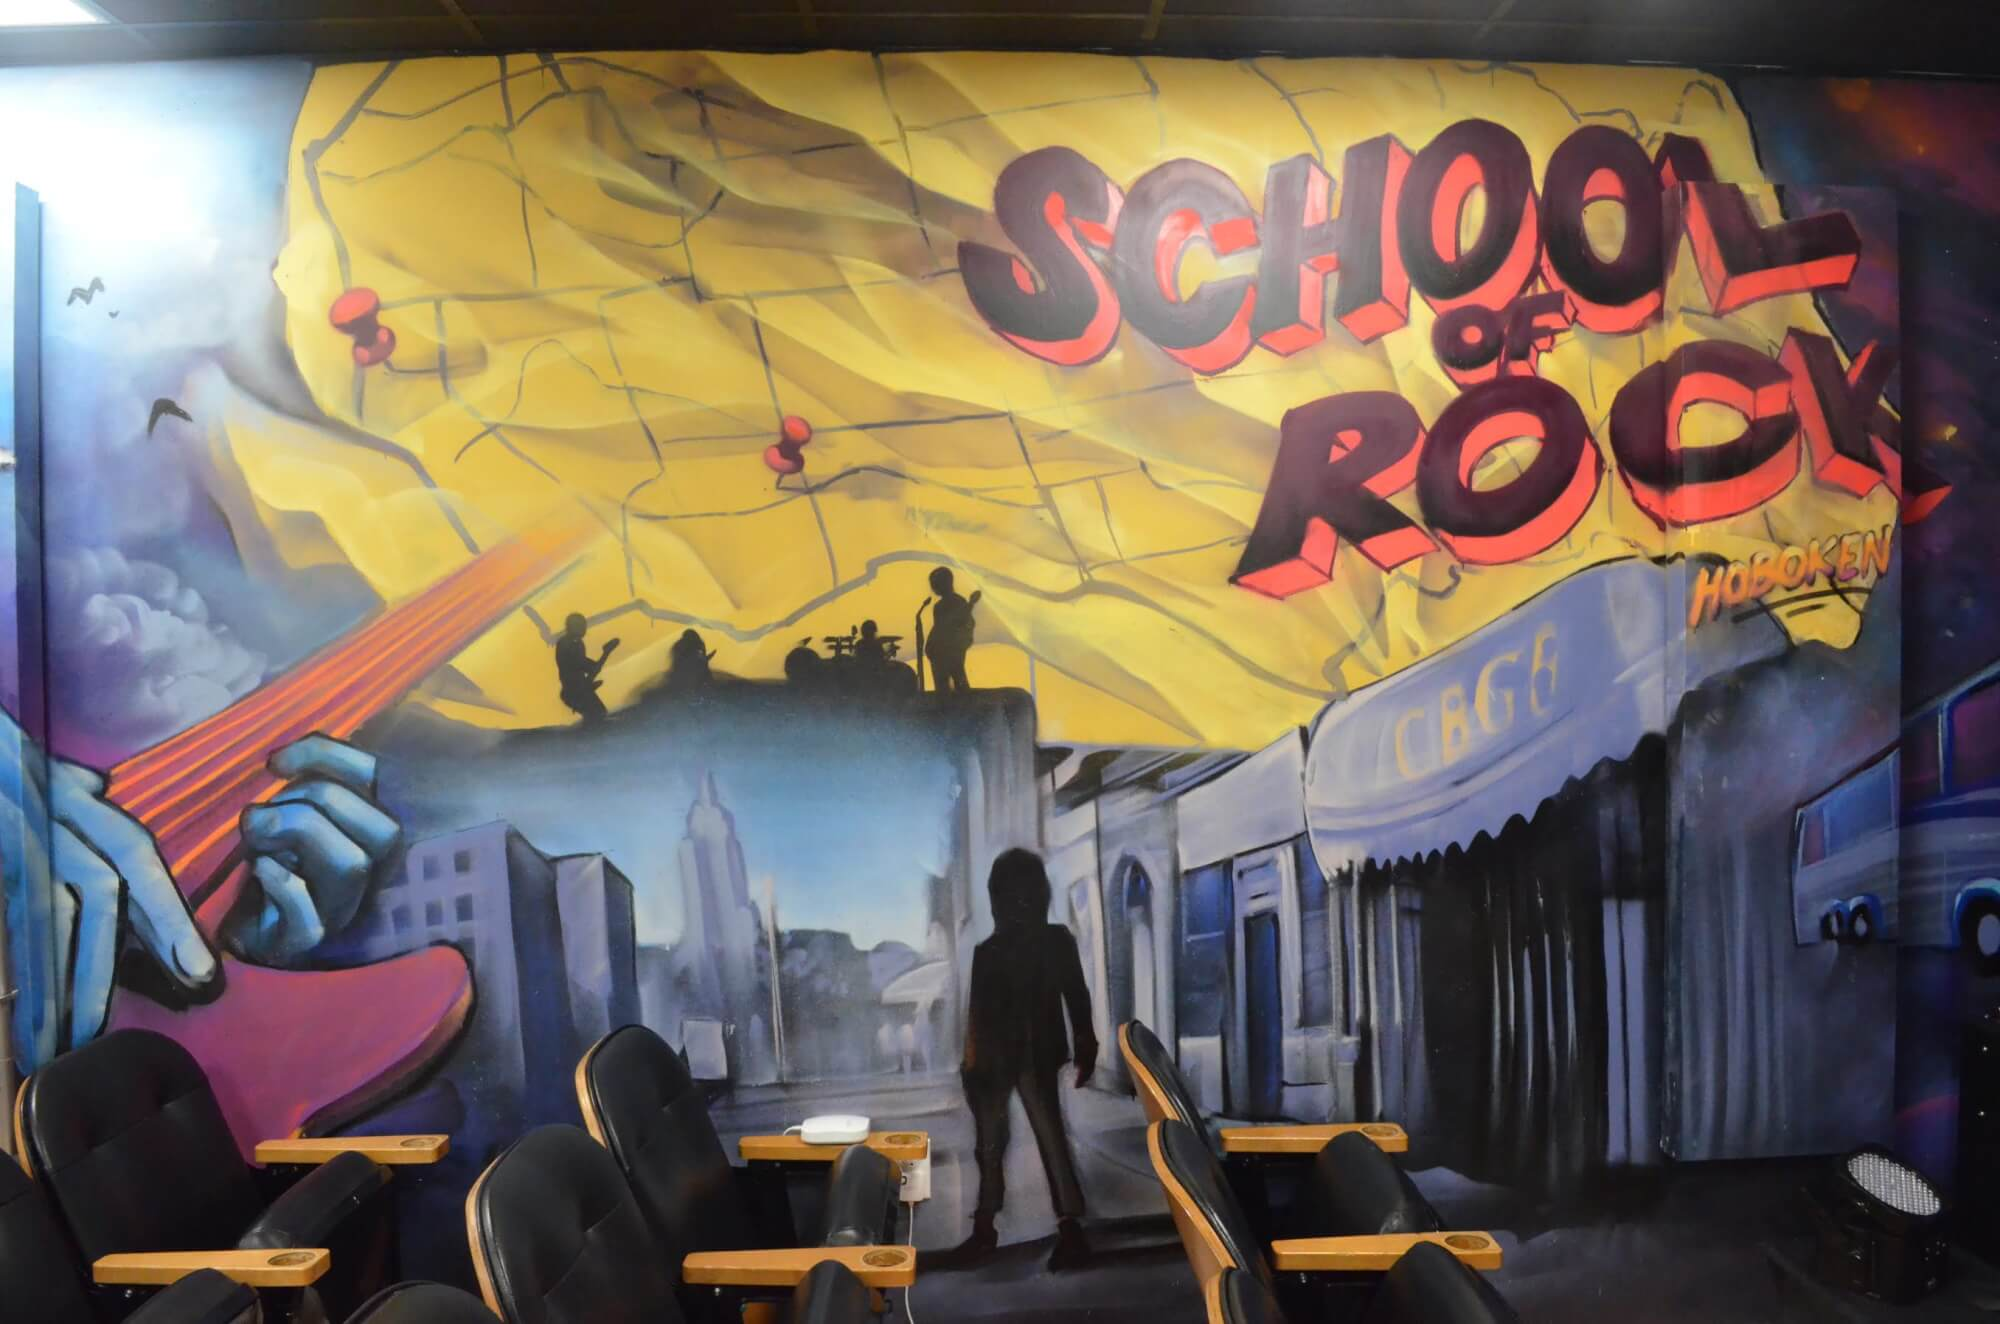 Here's a taste of the awesome mural in our venue space done by local artist Distoart.